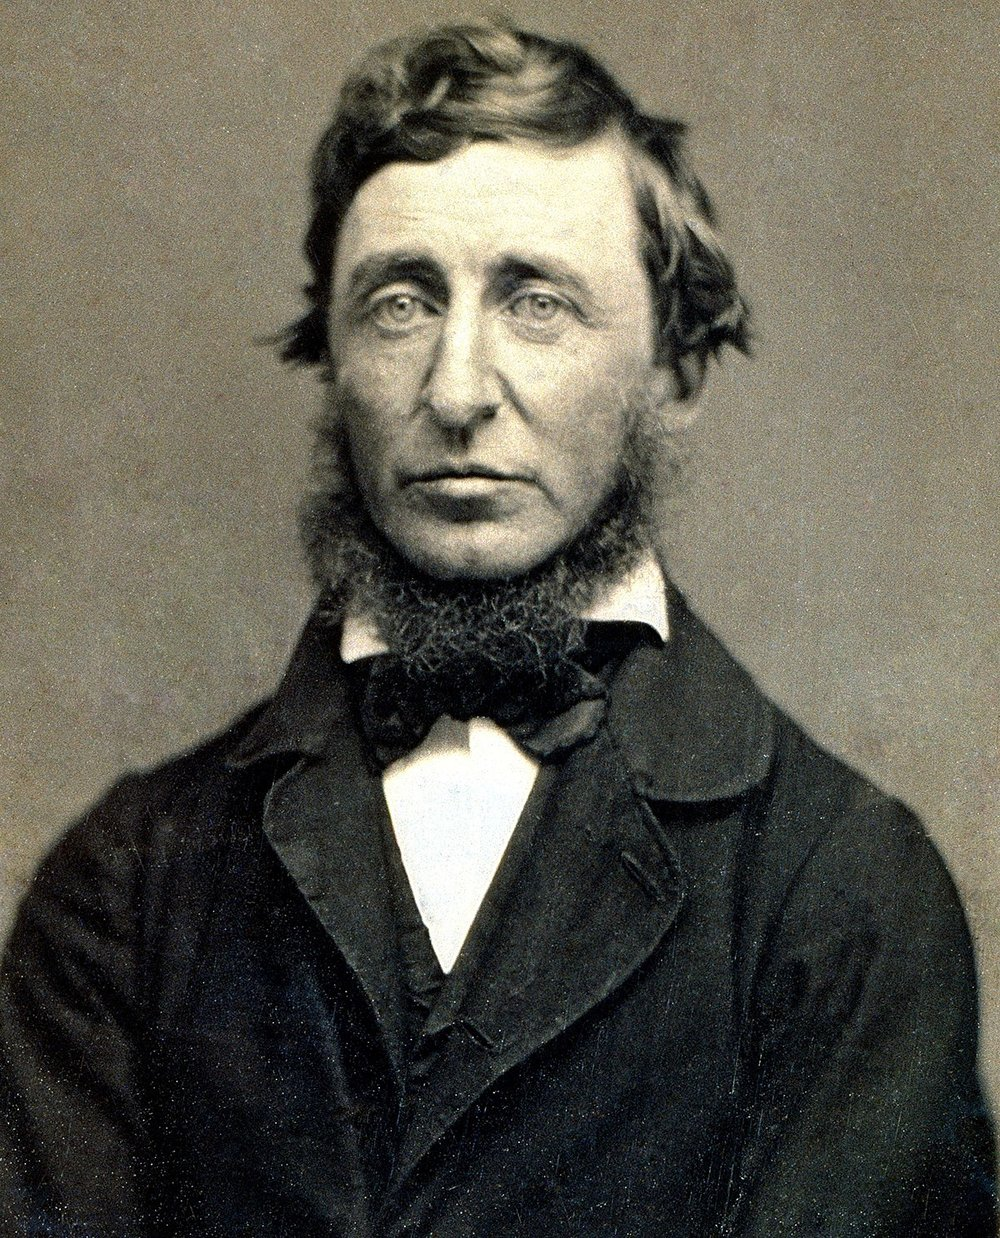 """Most men lead lives of quiet desperation and die with their song still inside them."" - Henry David Thoreau"